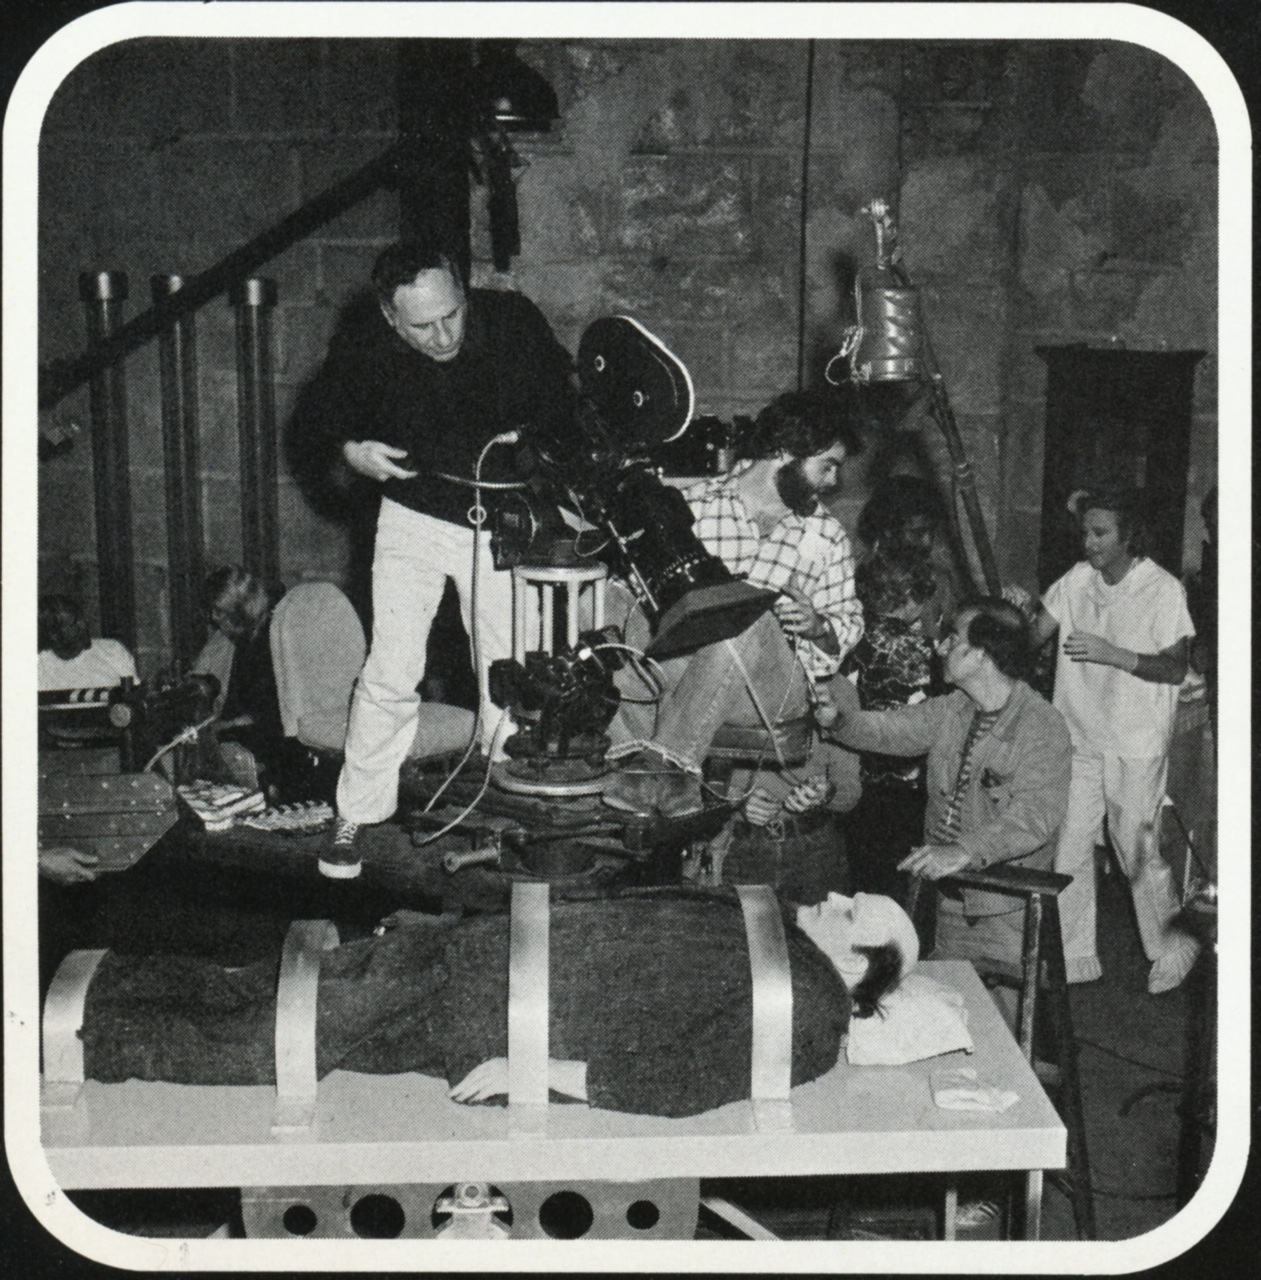 photo tournage coulisse cinema YoungFrankenstein 35 Photos sur des tournages de films #2  photo featured cinema 2 bonus